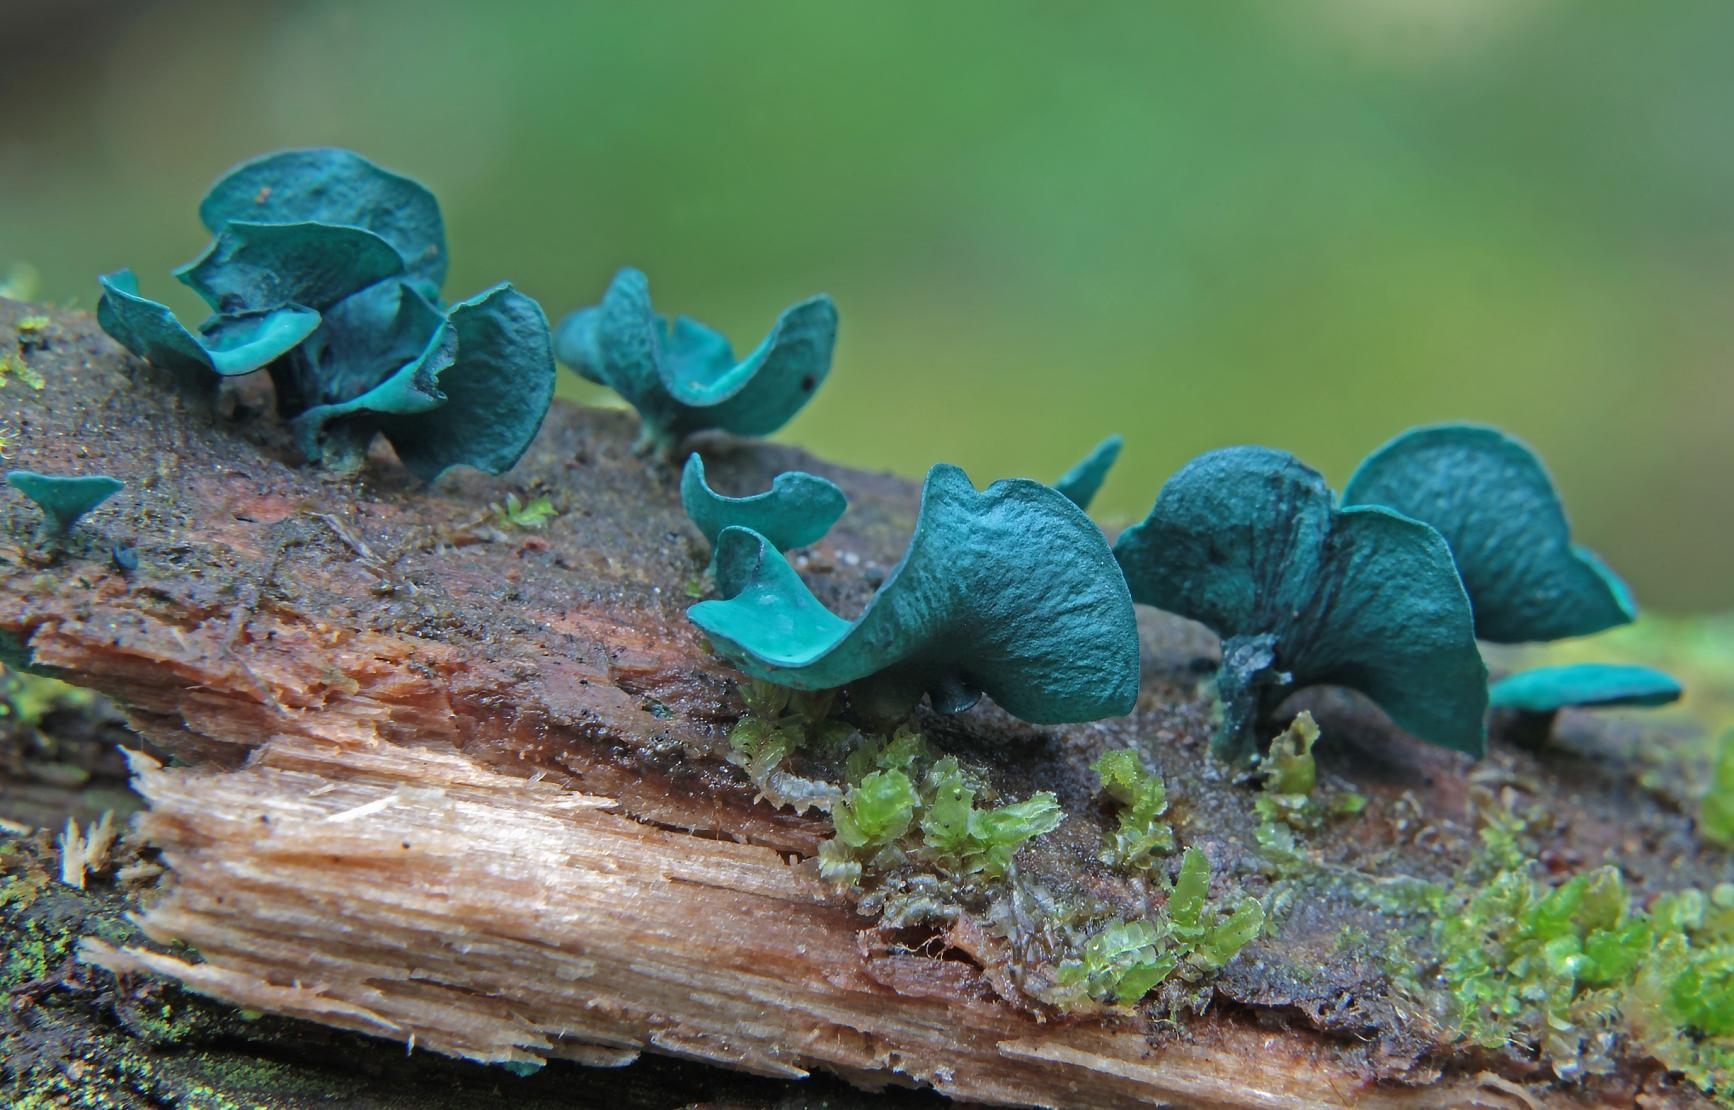 Blue fungus on a piece of wood